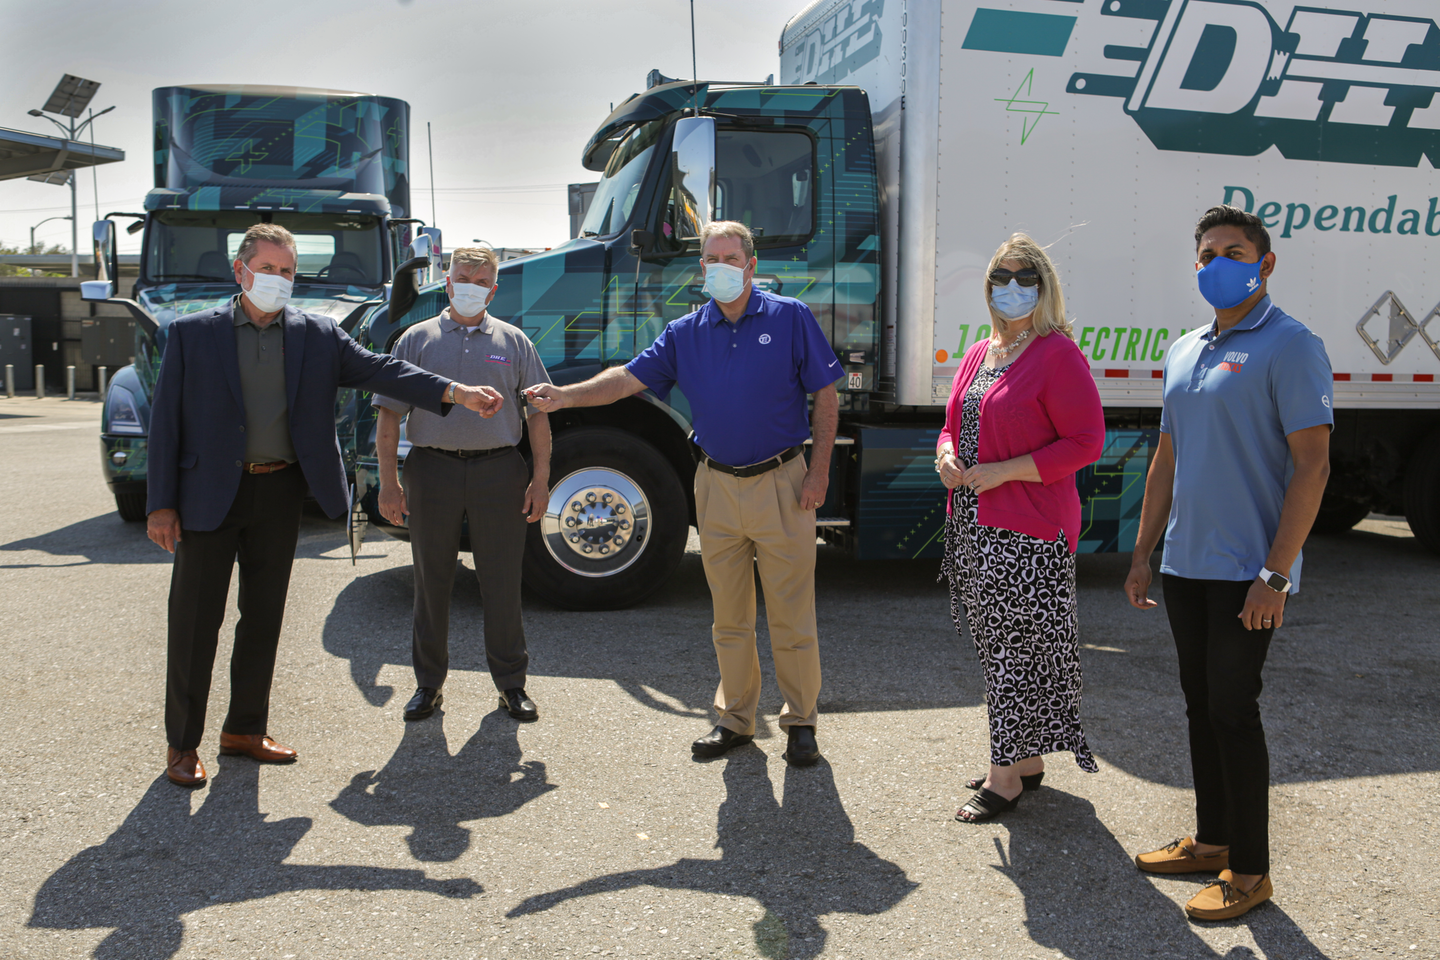 General manager of Volvo Trucks North America's TEC Equipment dealership, Mike Reardon, hands over the keys to the first Volvo VNR Electric Class 8 truck models to Joe Finney with Dependable Highway Express. From left to right: Joe Finney, COO at Dependable Highway Express; Troy Musgrave, director of process improvement at Dependable Highway Express; Mike Reardon, general manager at TEC Equipment; Janice Rutherford, county supervisor of San Bernardino County and South Coast Air Quality Management District board member; Aravind Kailas, advanced technology policy director at Volvo Group North America.